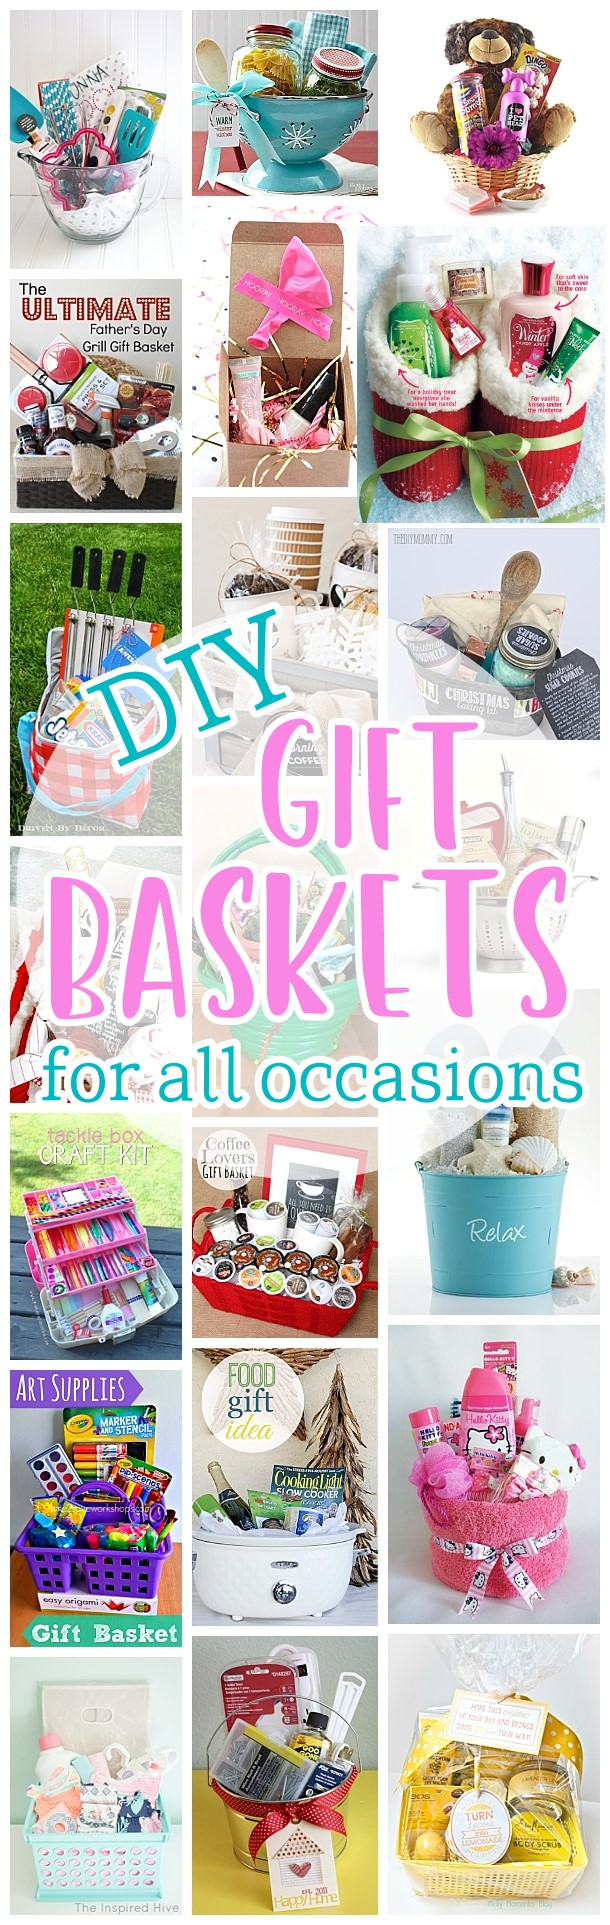 Do-it-yourself basket 60